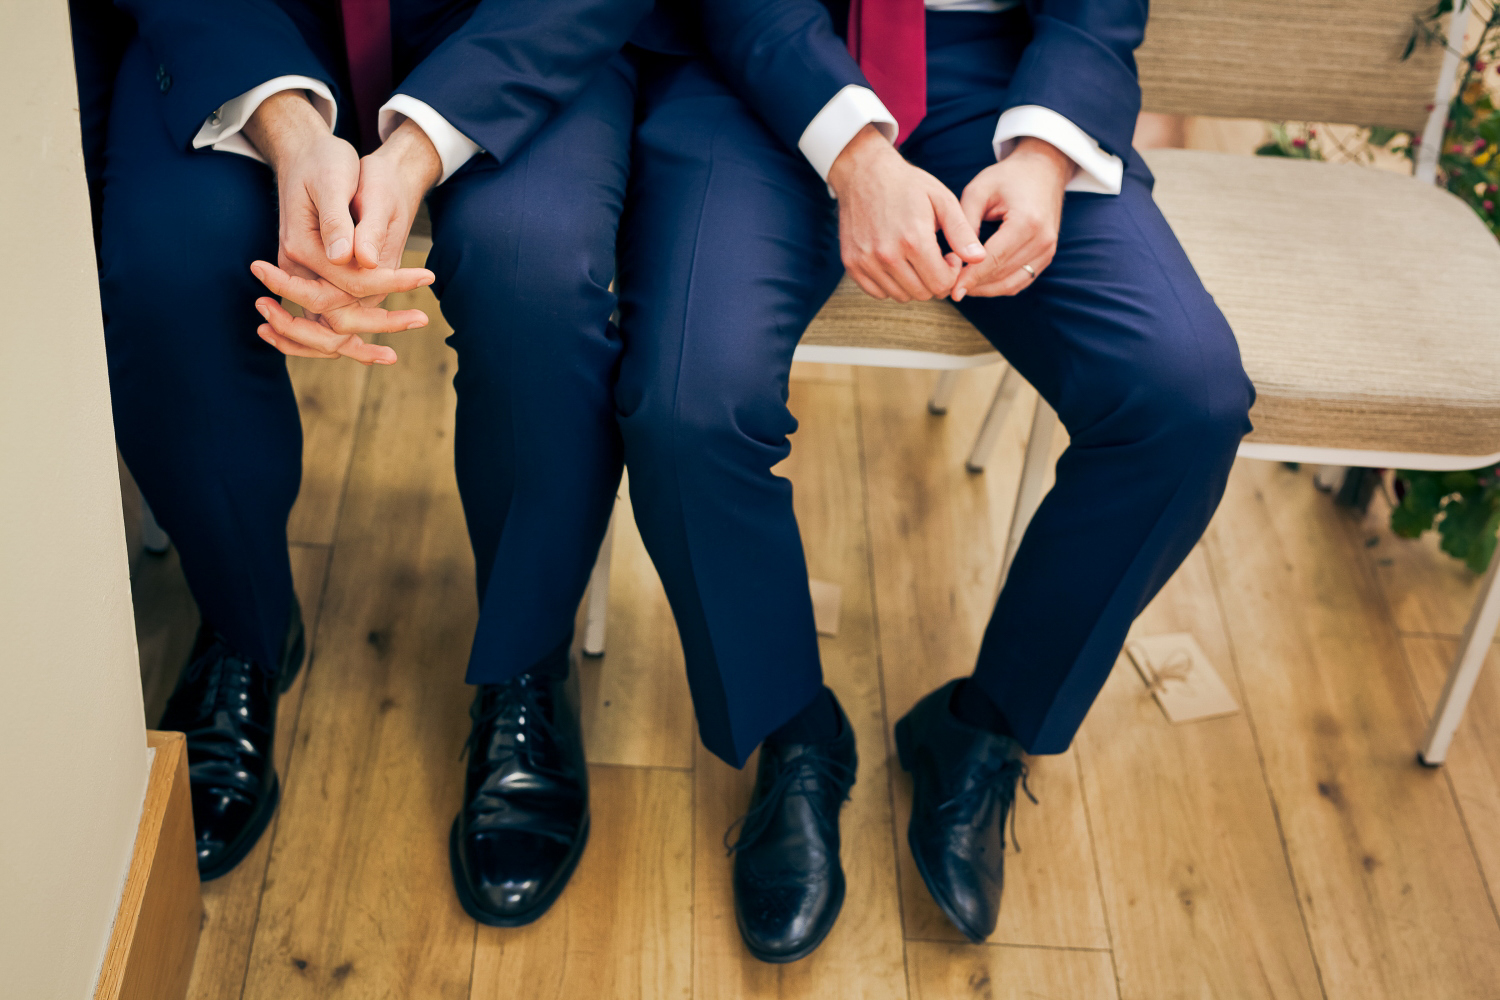 Two men are sat, resting on their knees, during an emotional wedding ceremony